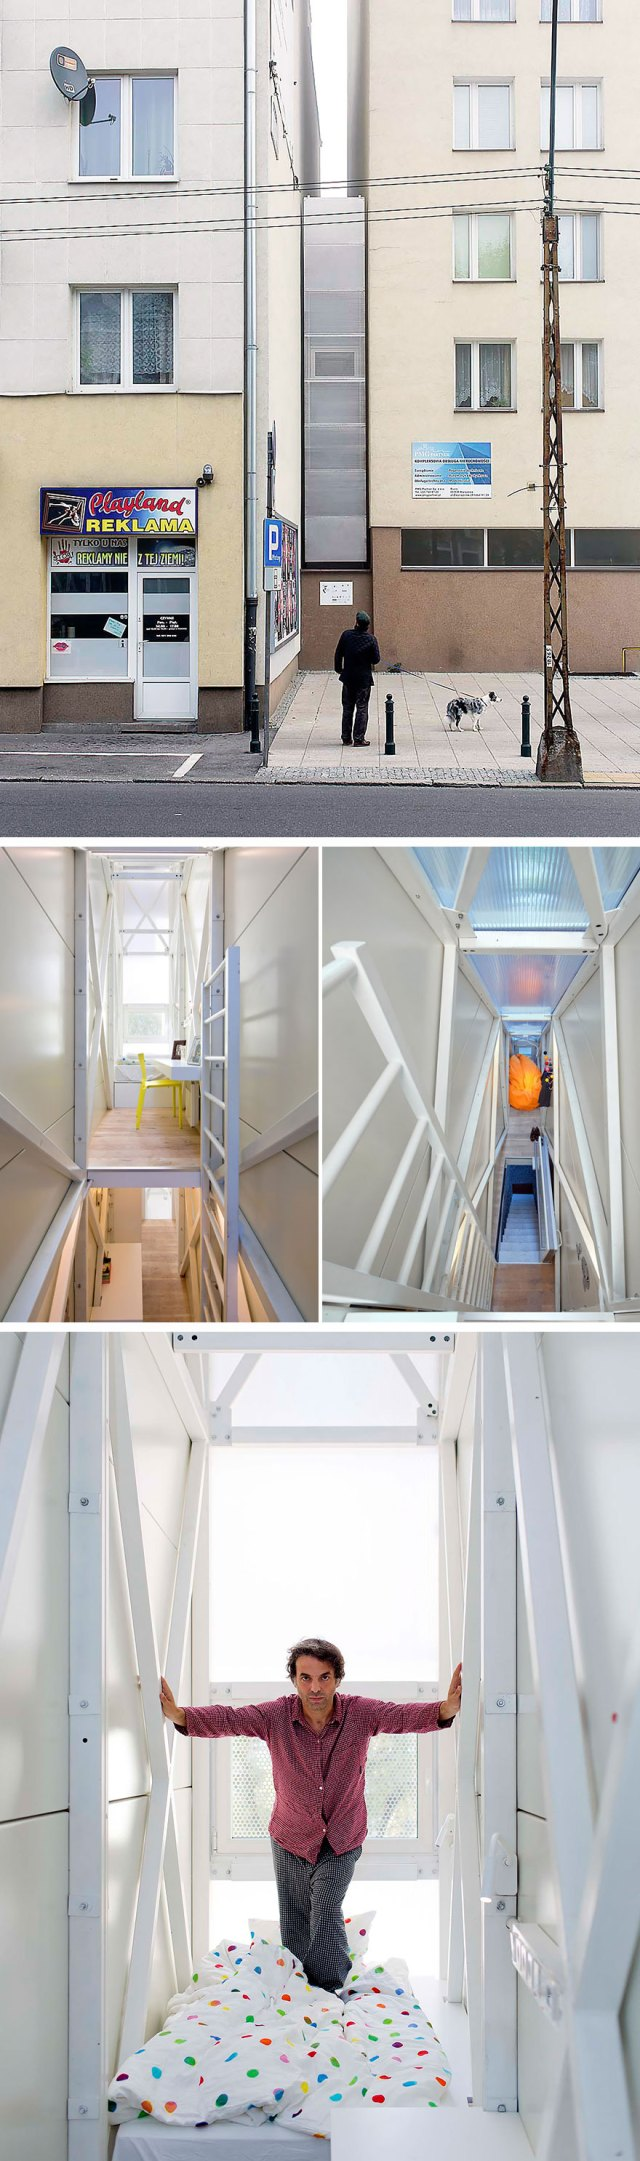 The Keret House in Warsaw